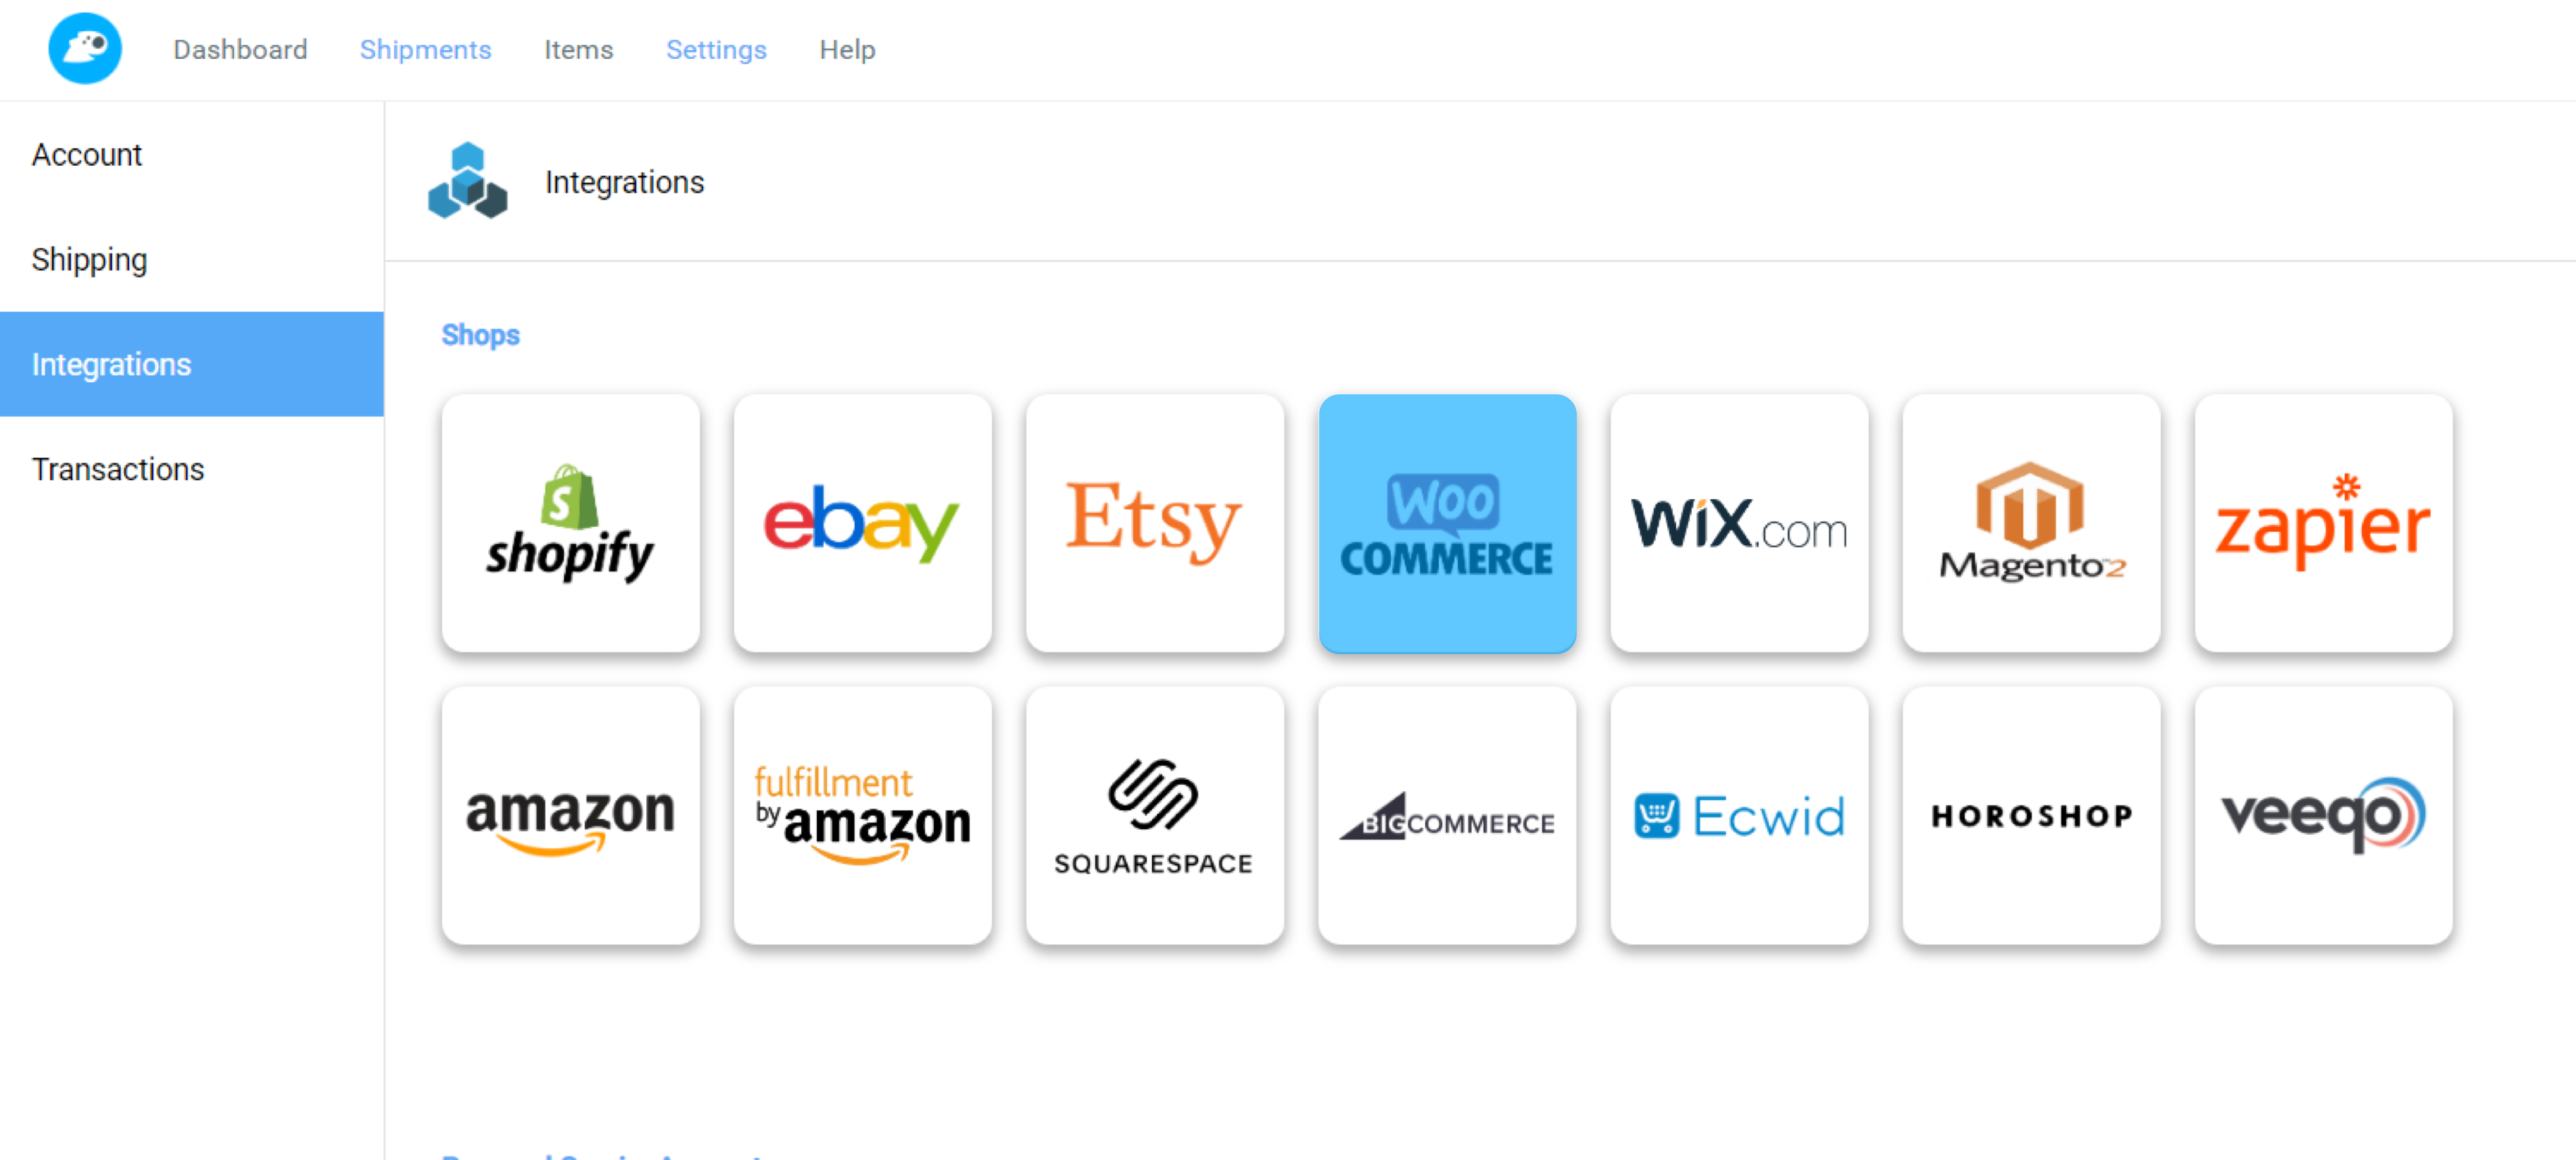 Fetchy account Integrations - WooCommerce marked